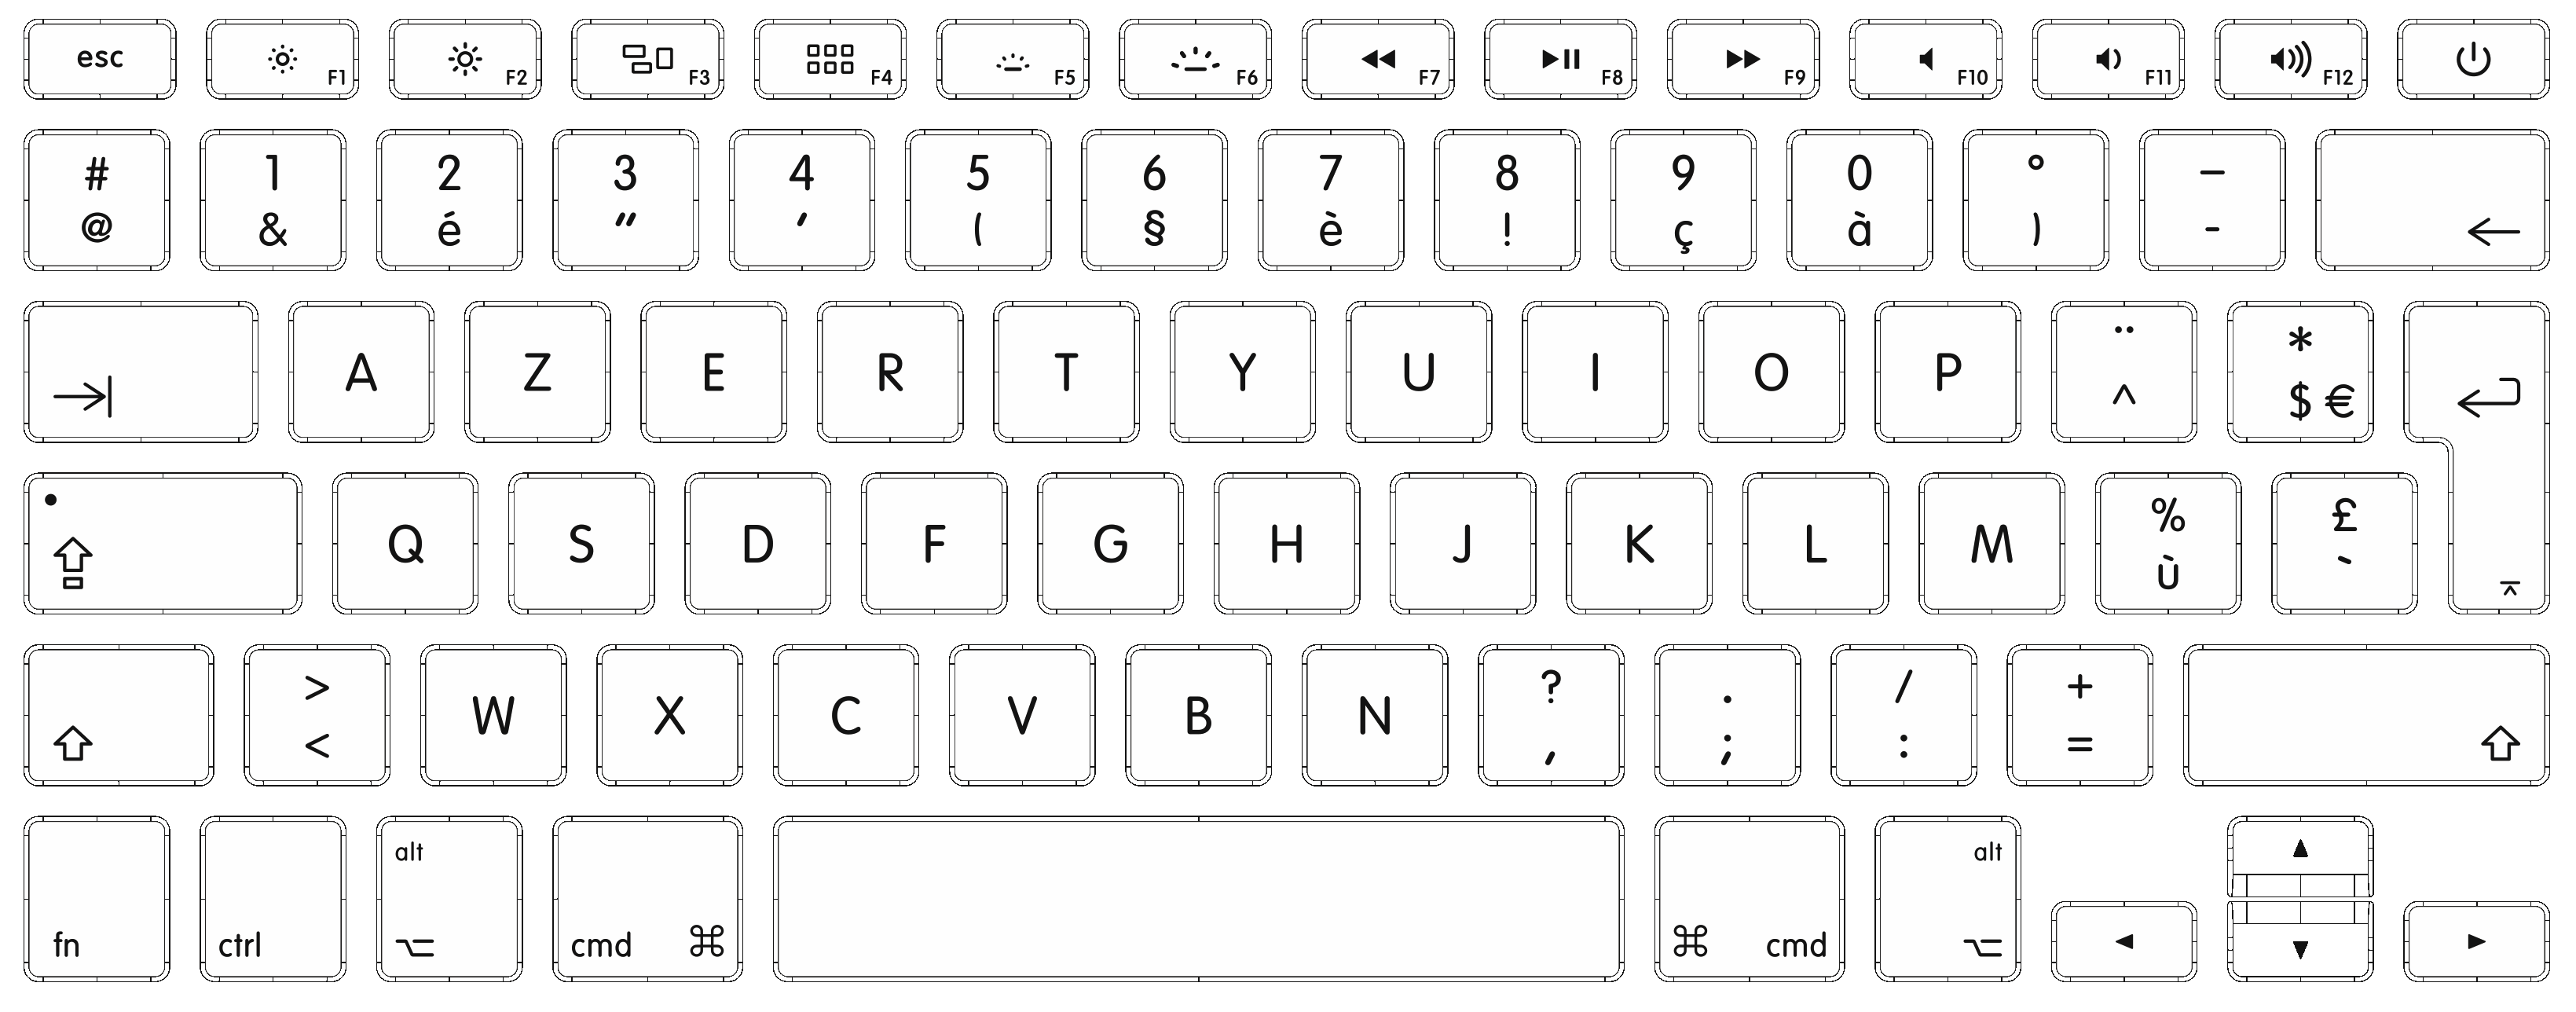 on a keyboard layout where caret     is a combining key